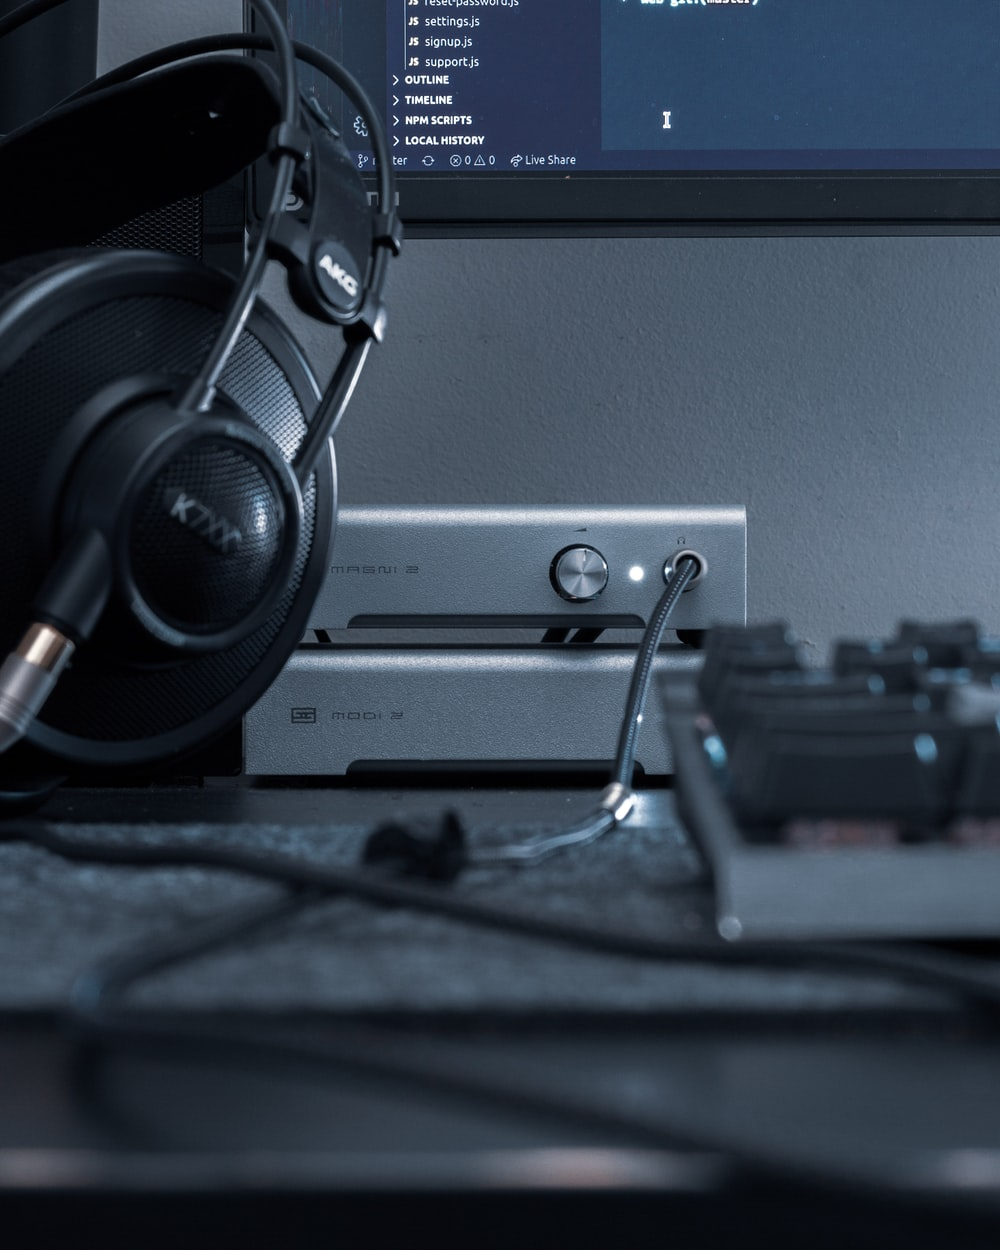 black and gray headphones on gray computer tower